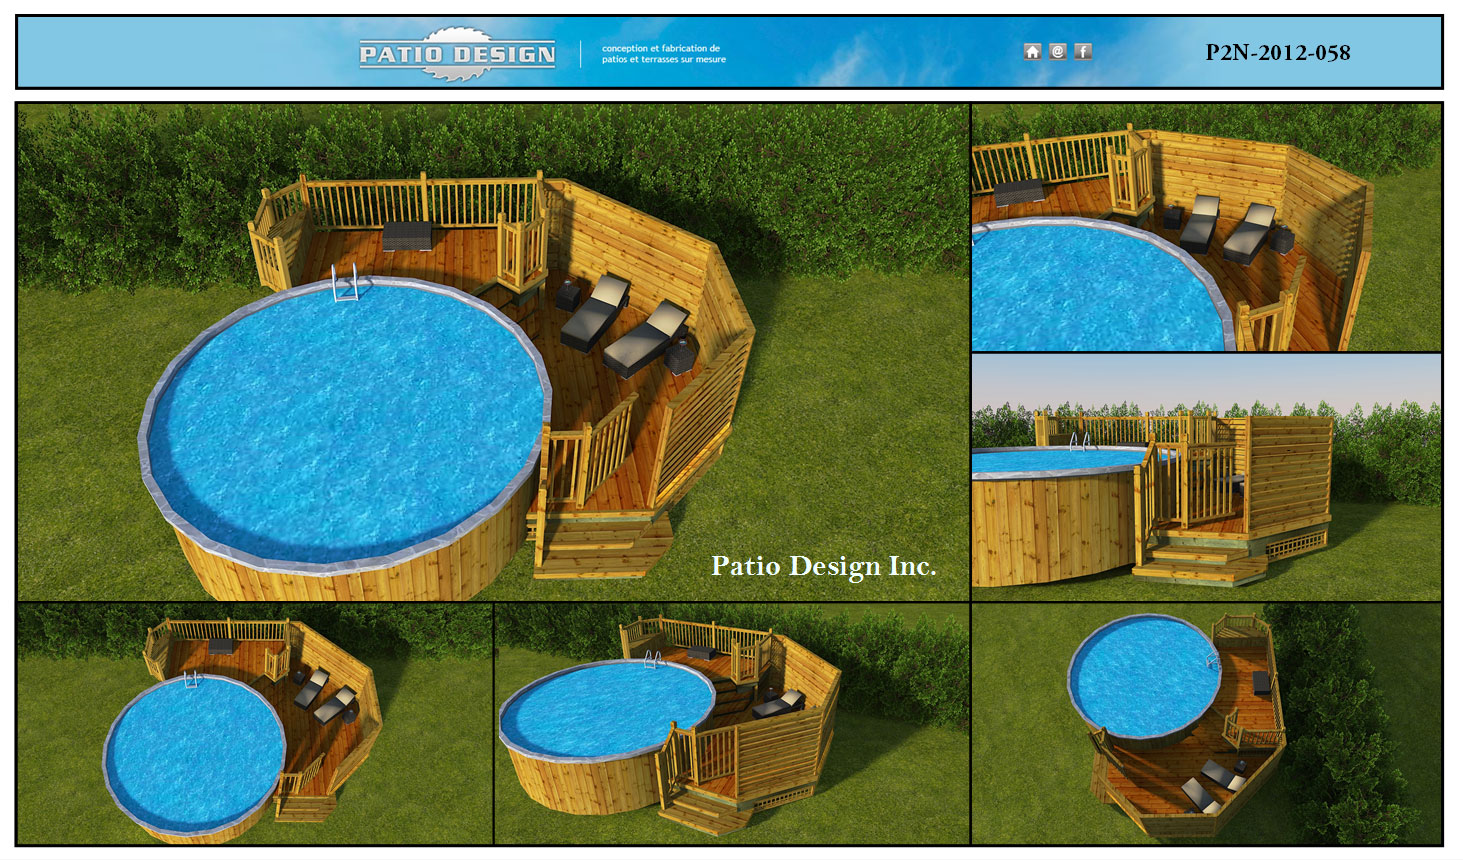 Plan 3d patio design inc for Plan pour patio de piscine